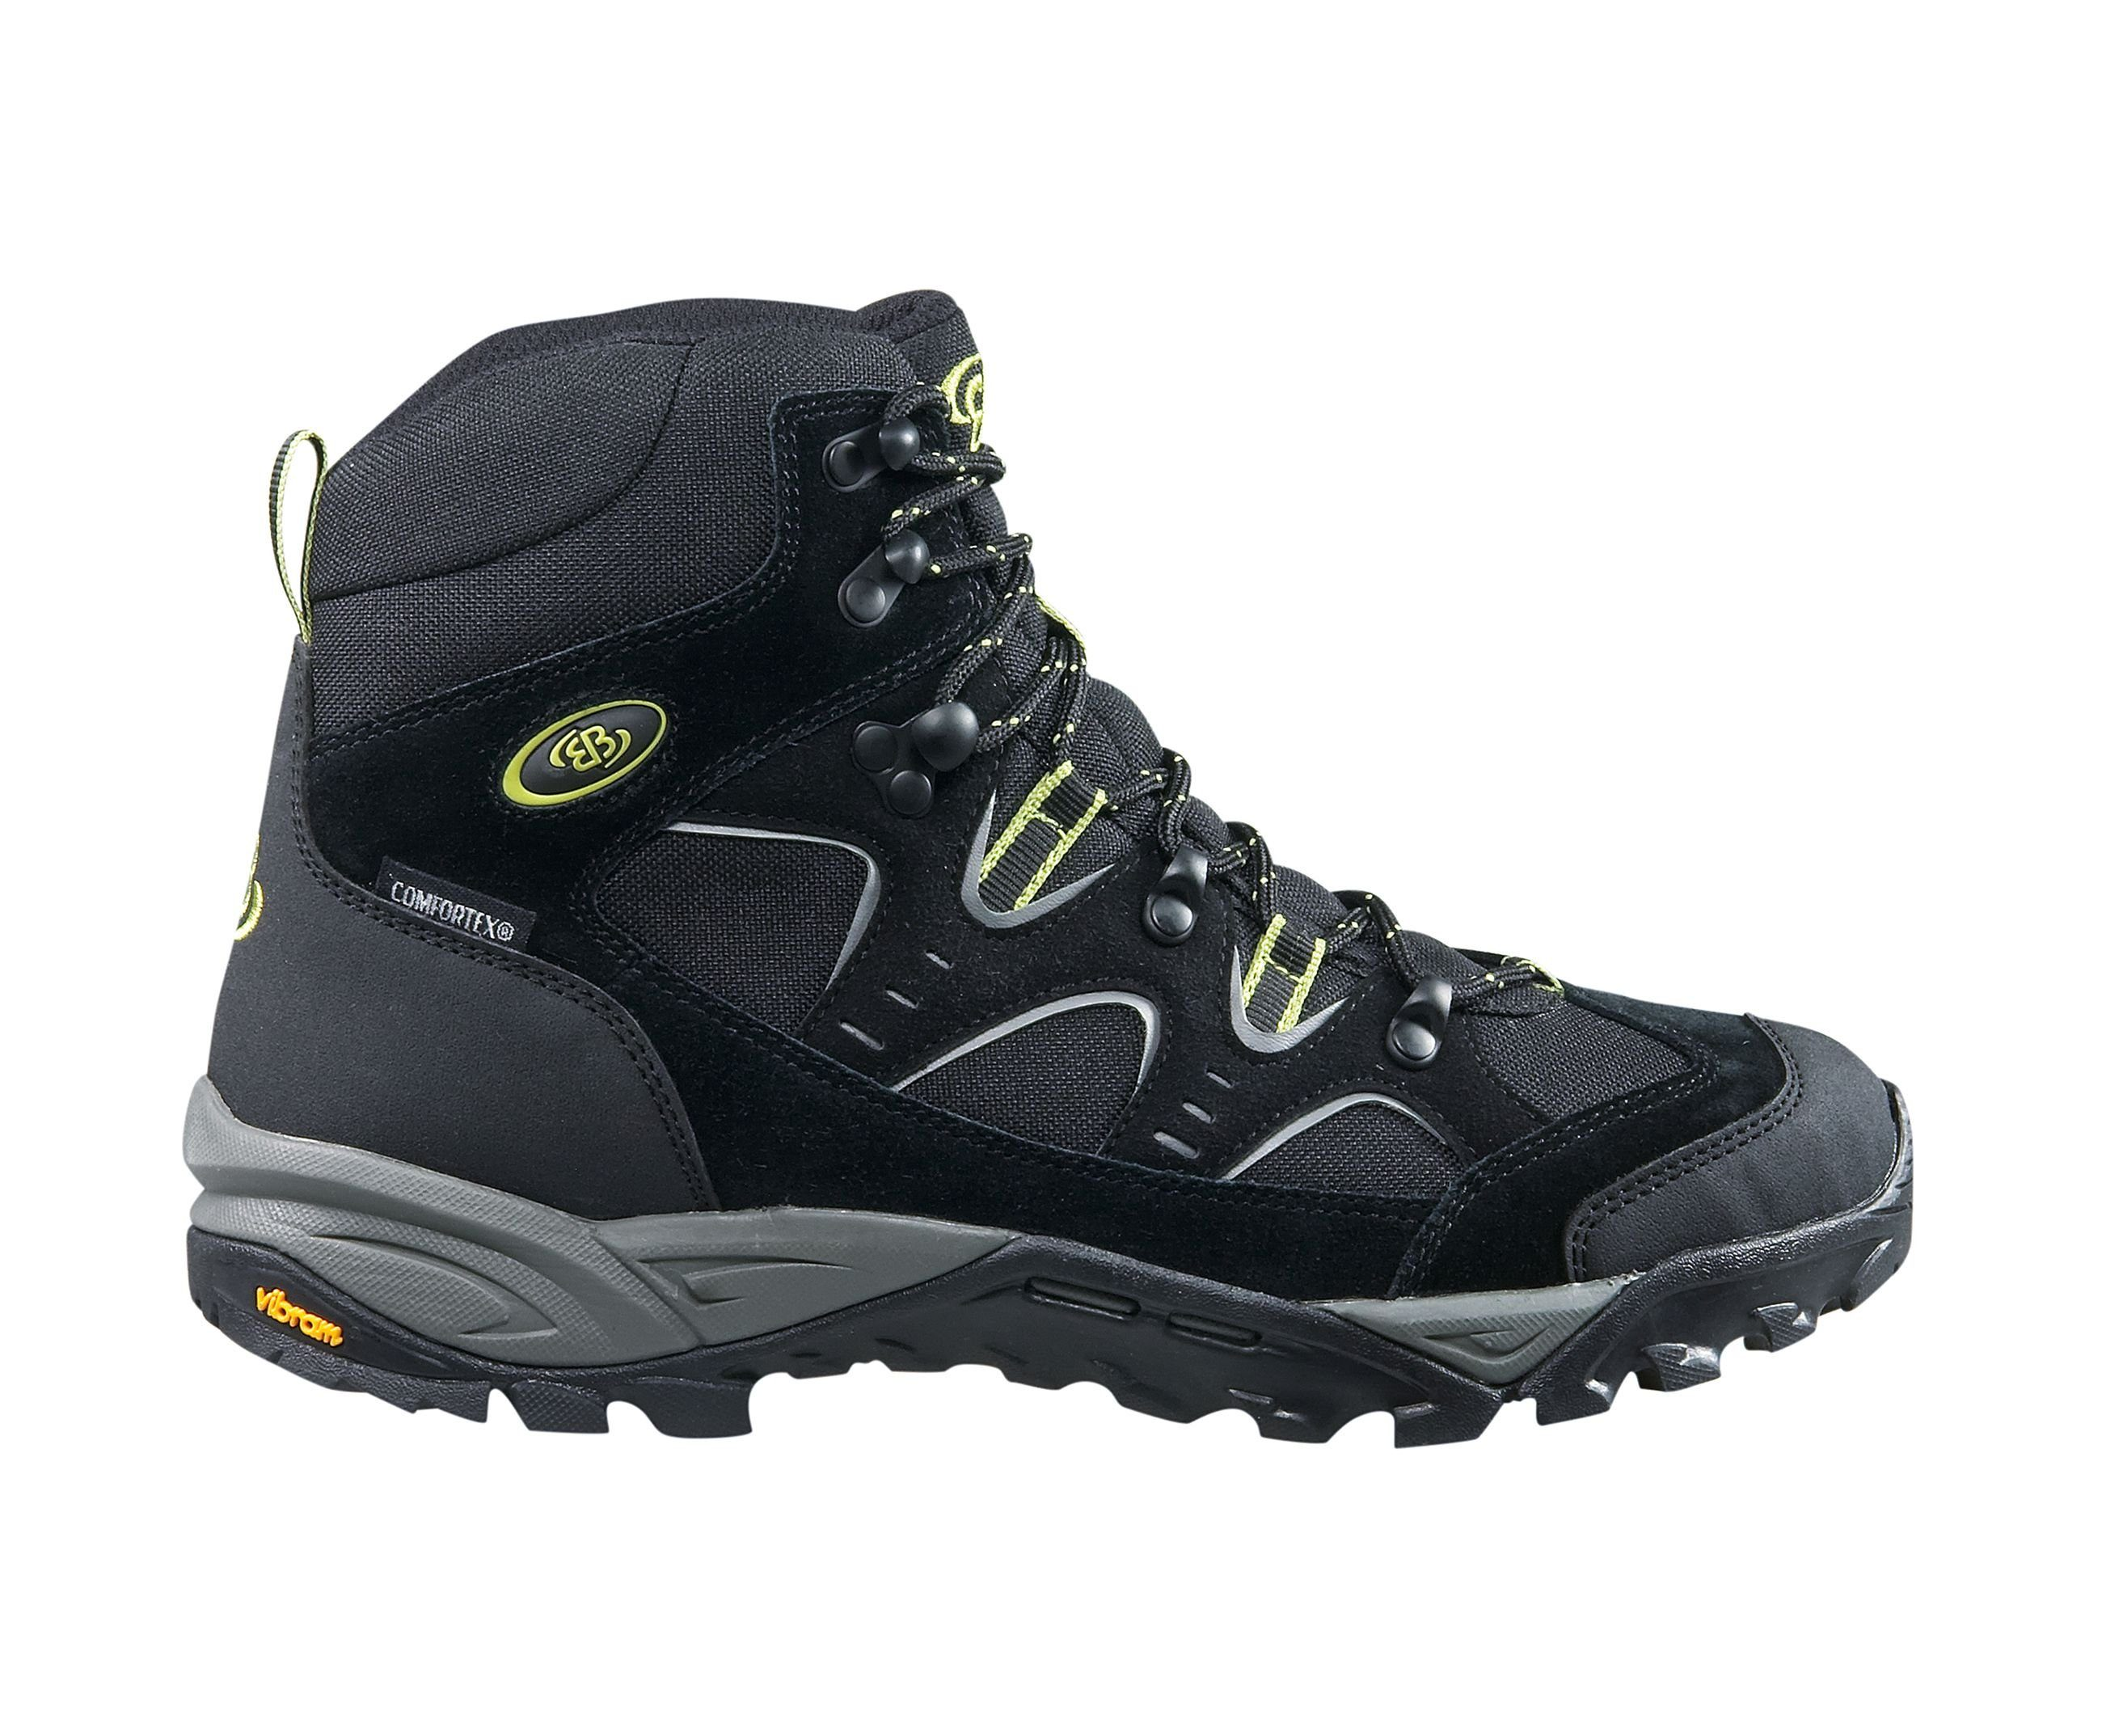 Brütting Trekkingschuh Takoma online kaufen  schwarz#ft5_slash#grau#ft5_slash#lemon